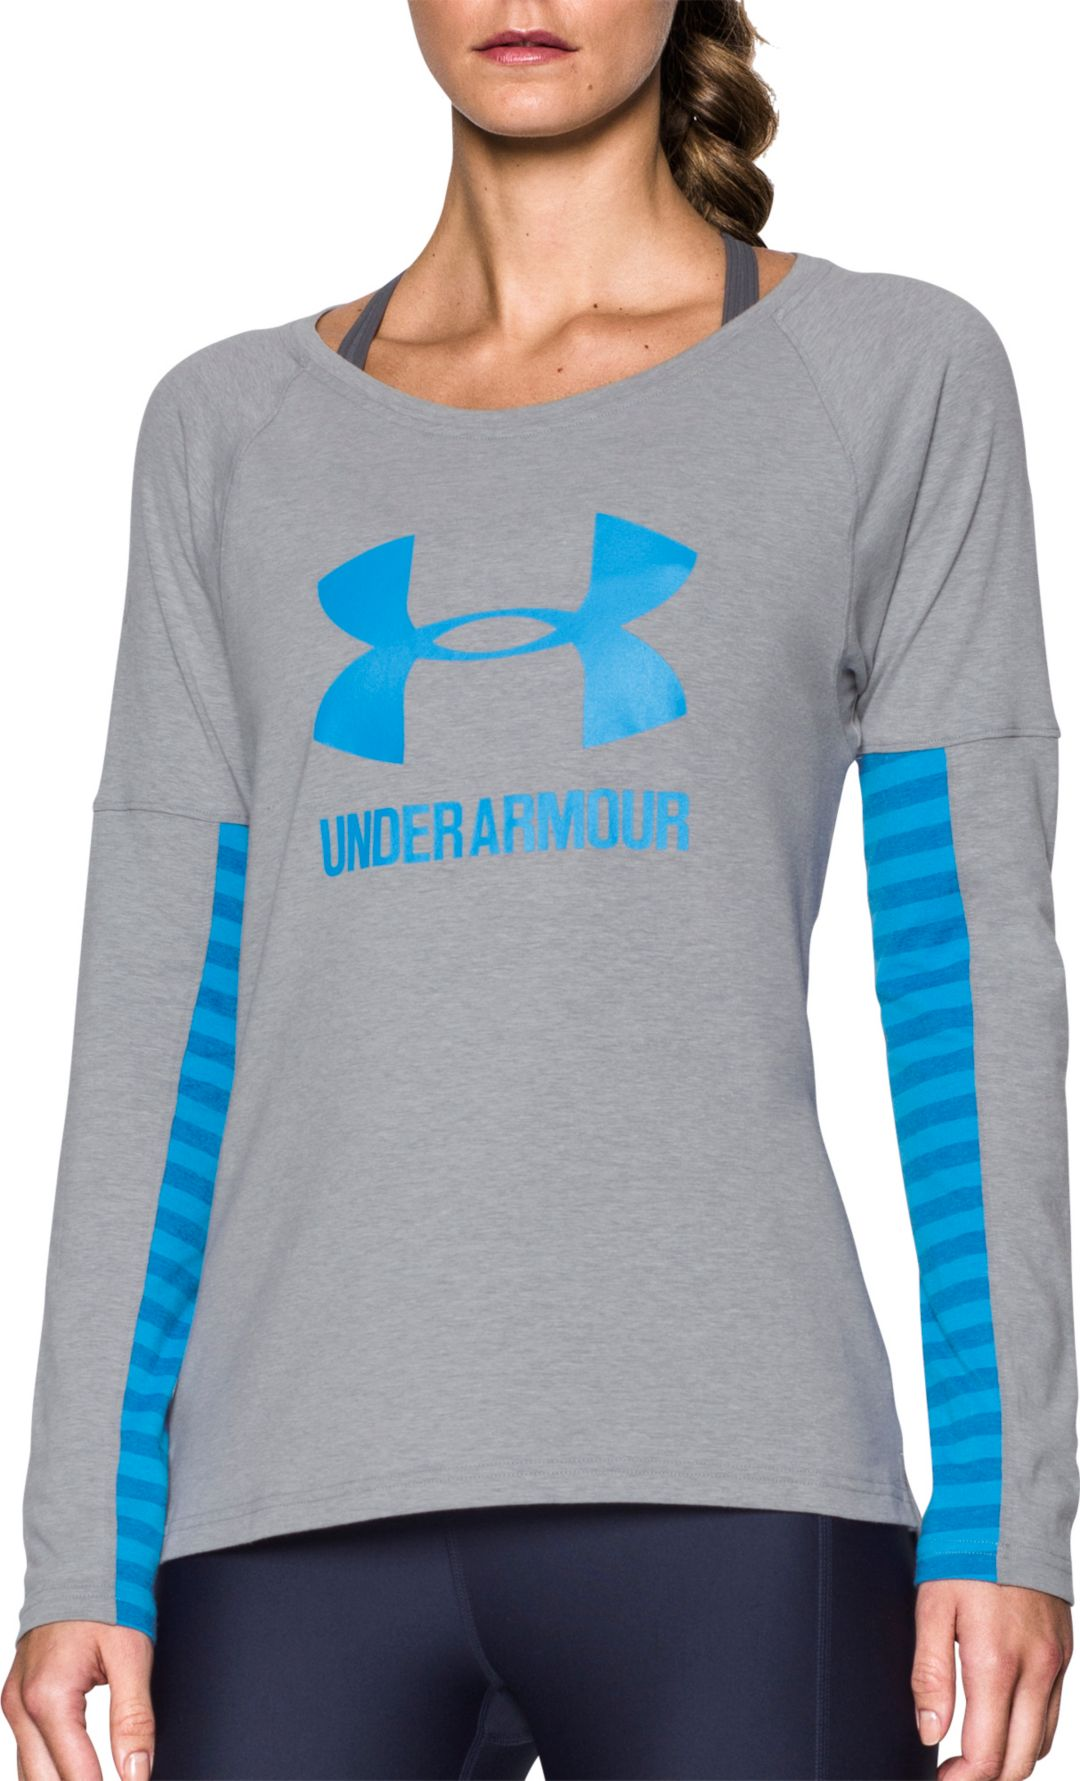 finest selection bd212 1c473 Under Armour Women s Rest Day Sportstyle Long Sleeve Shirt 1